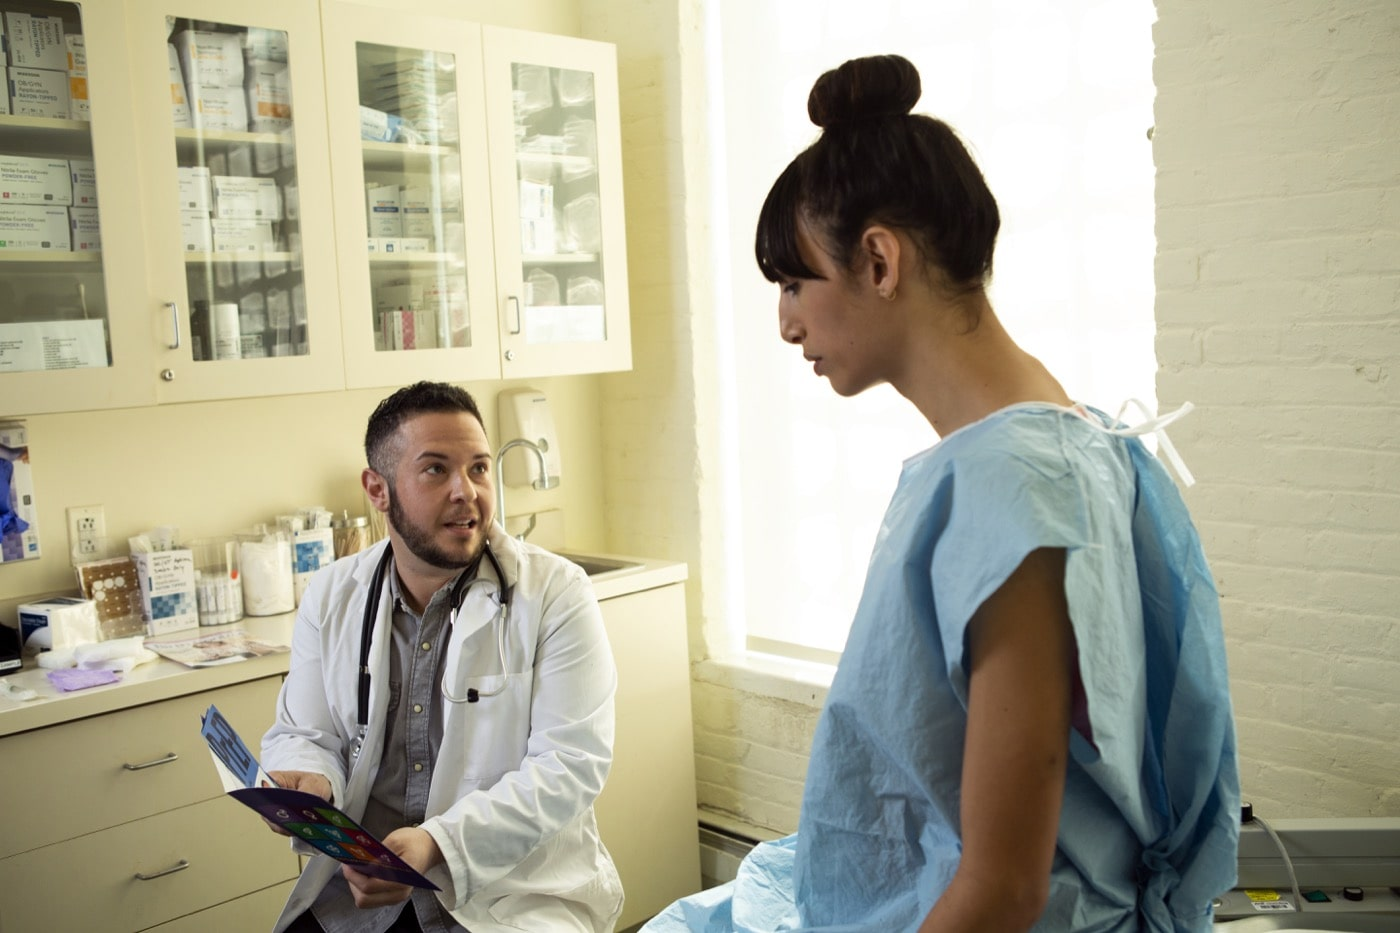 A patient in a hospital gown speaking to her doctor in an exam room.